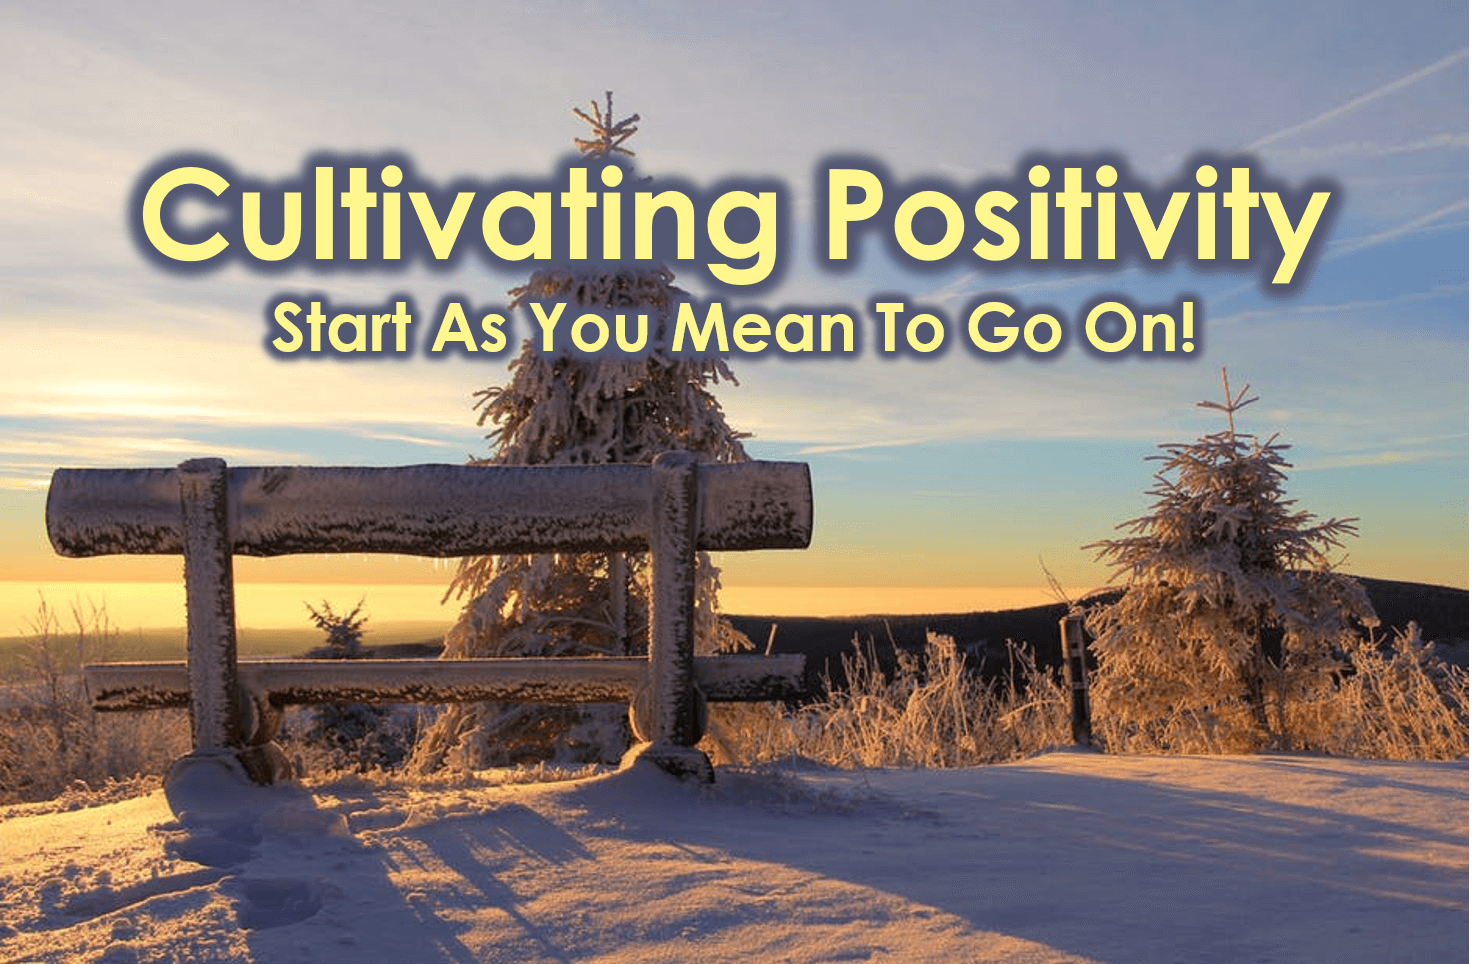 Cultivating Positivity – Start As You Mean To Go On!